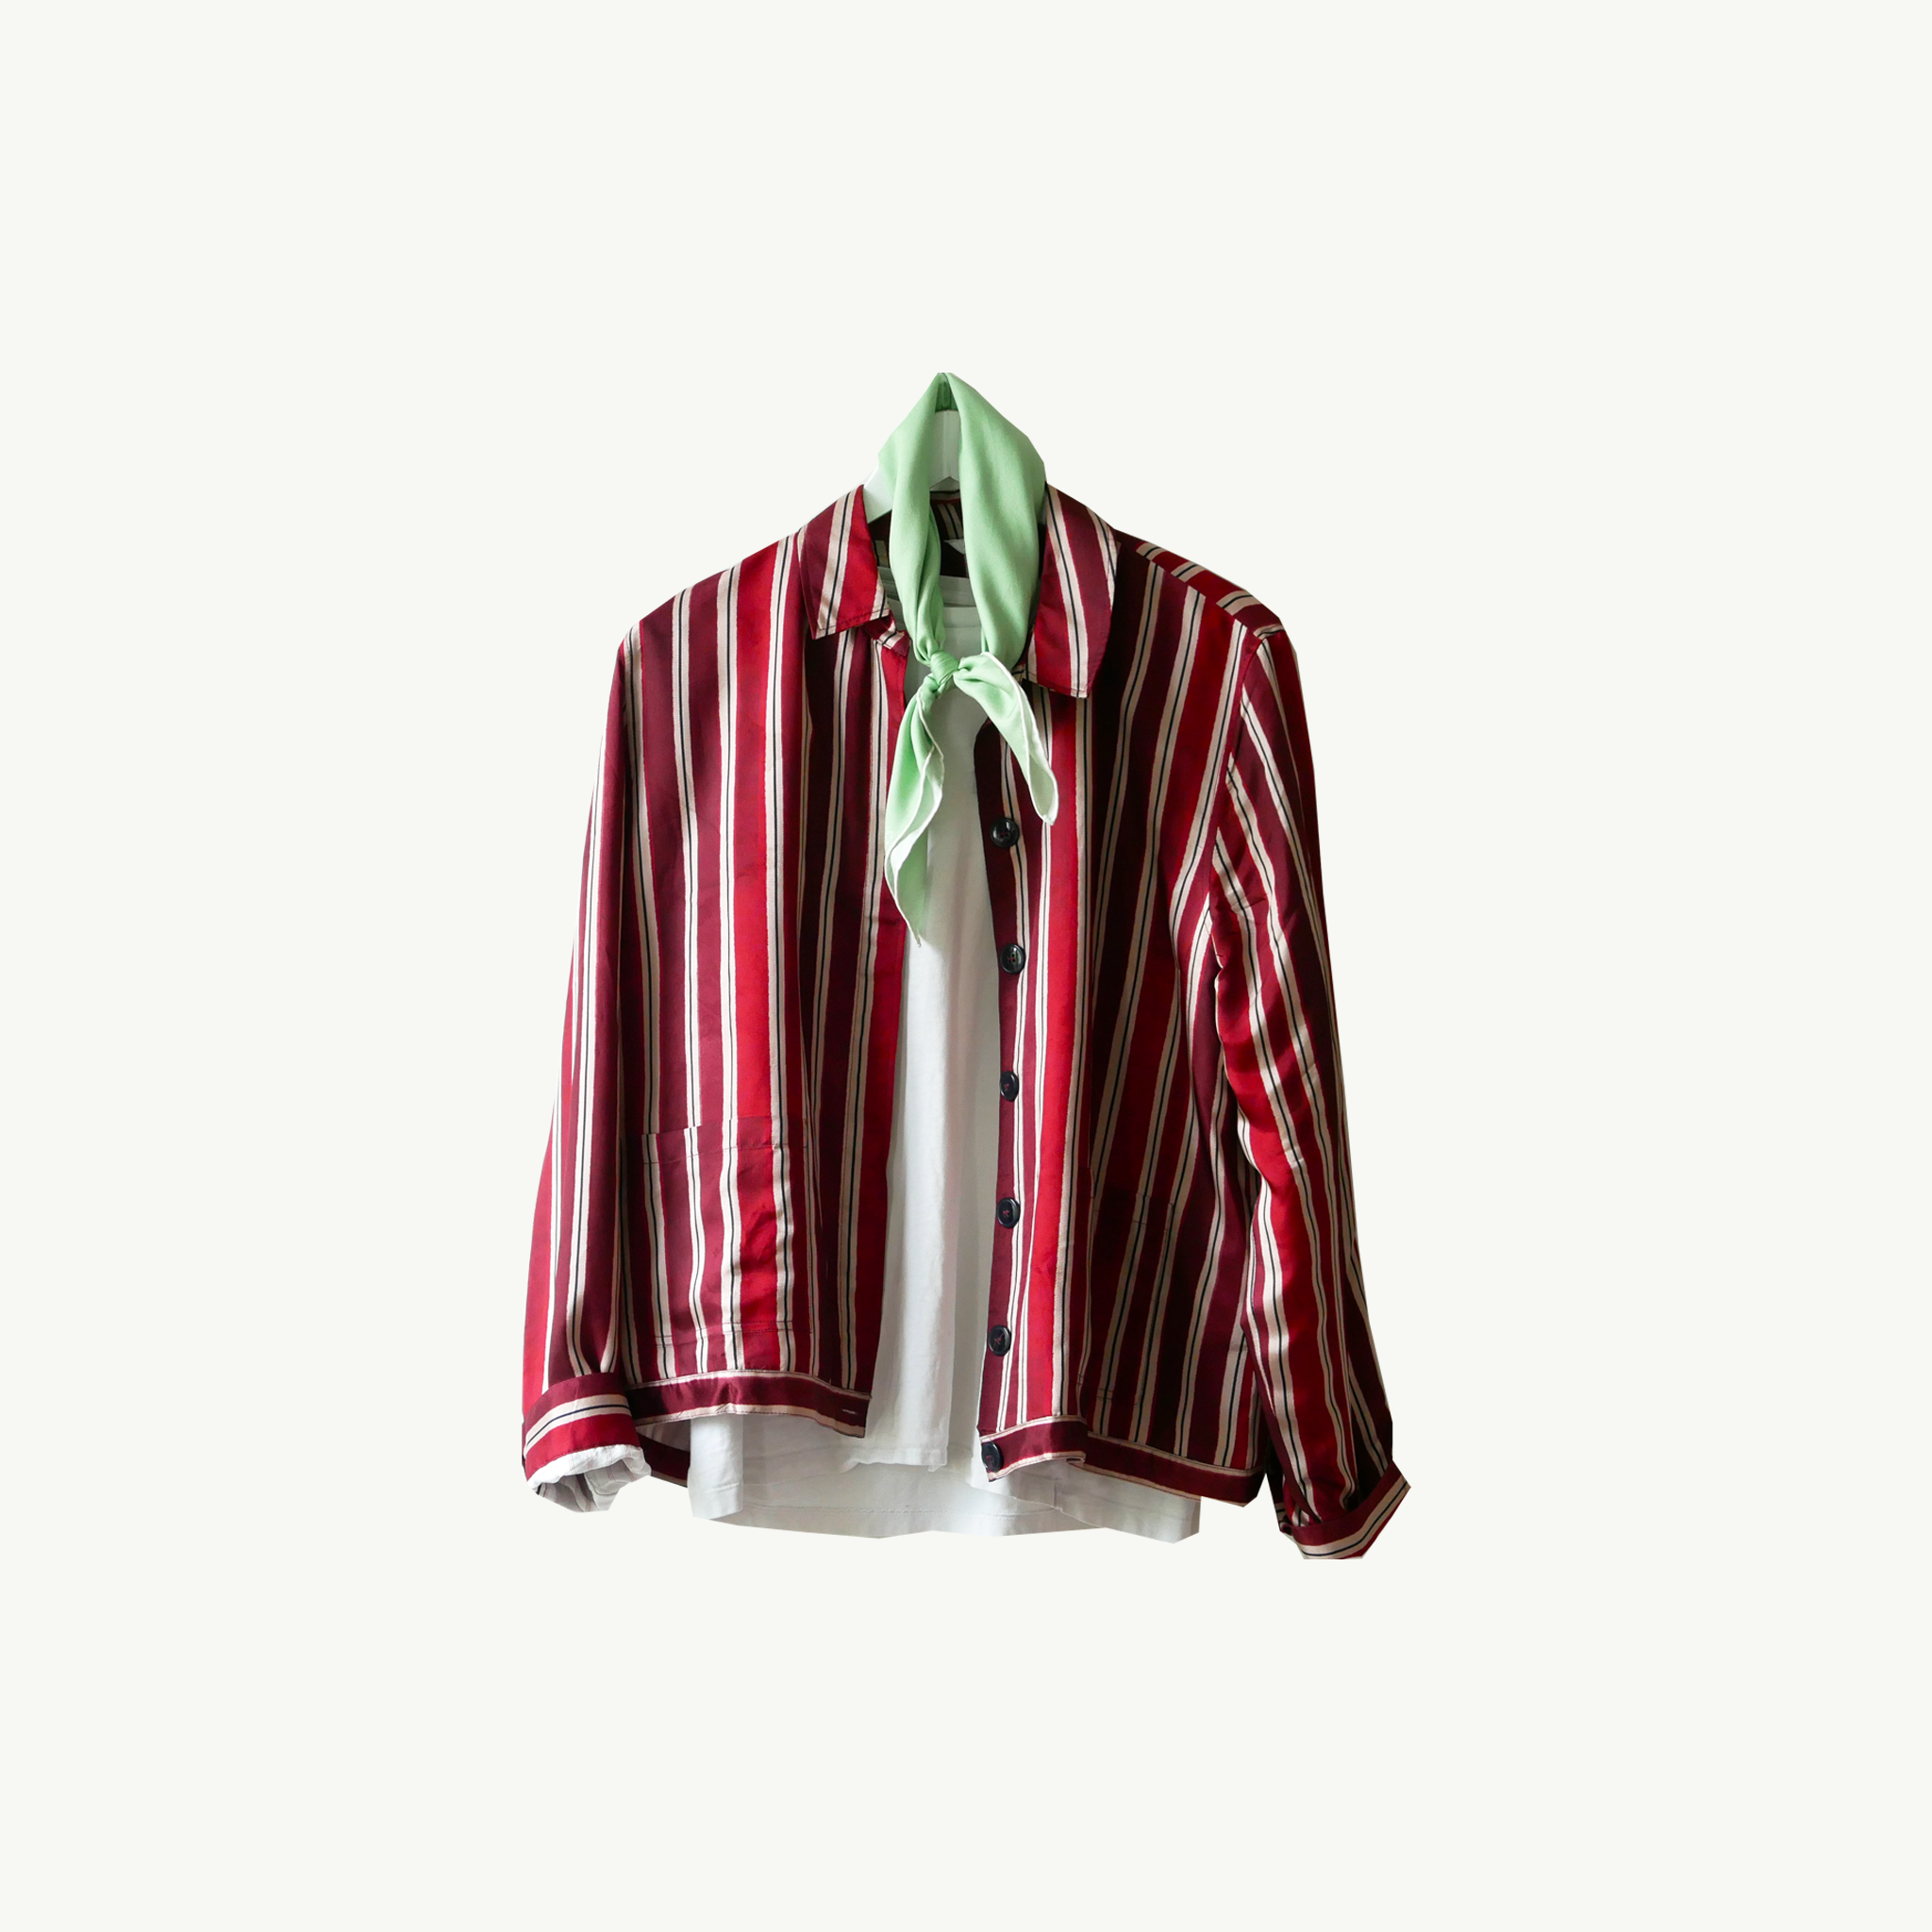 Capri, 20h08 handcrafted scarf worn on a red printed silk jacket over a white tee in A Day In The Life...Part III by Les Belles Heures